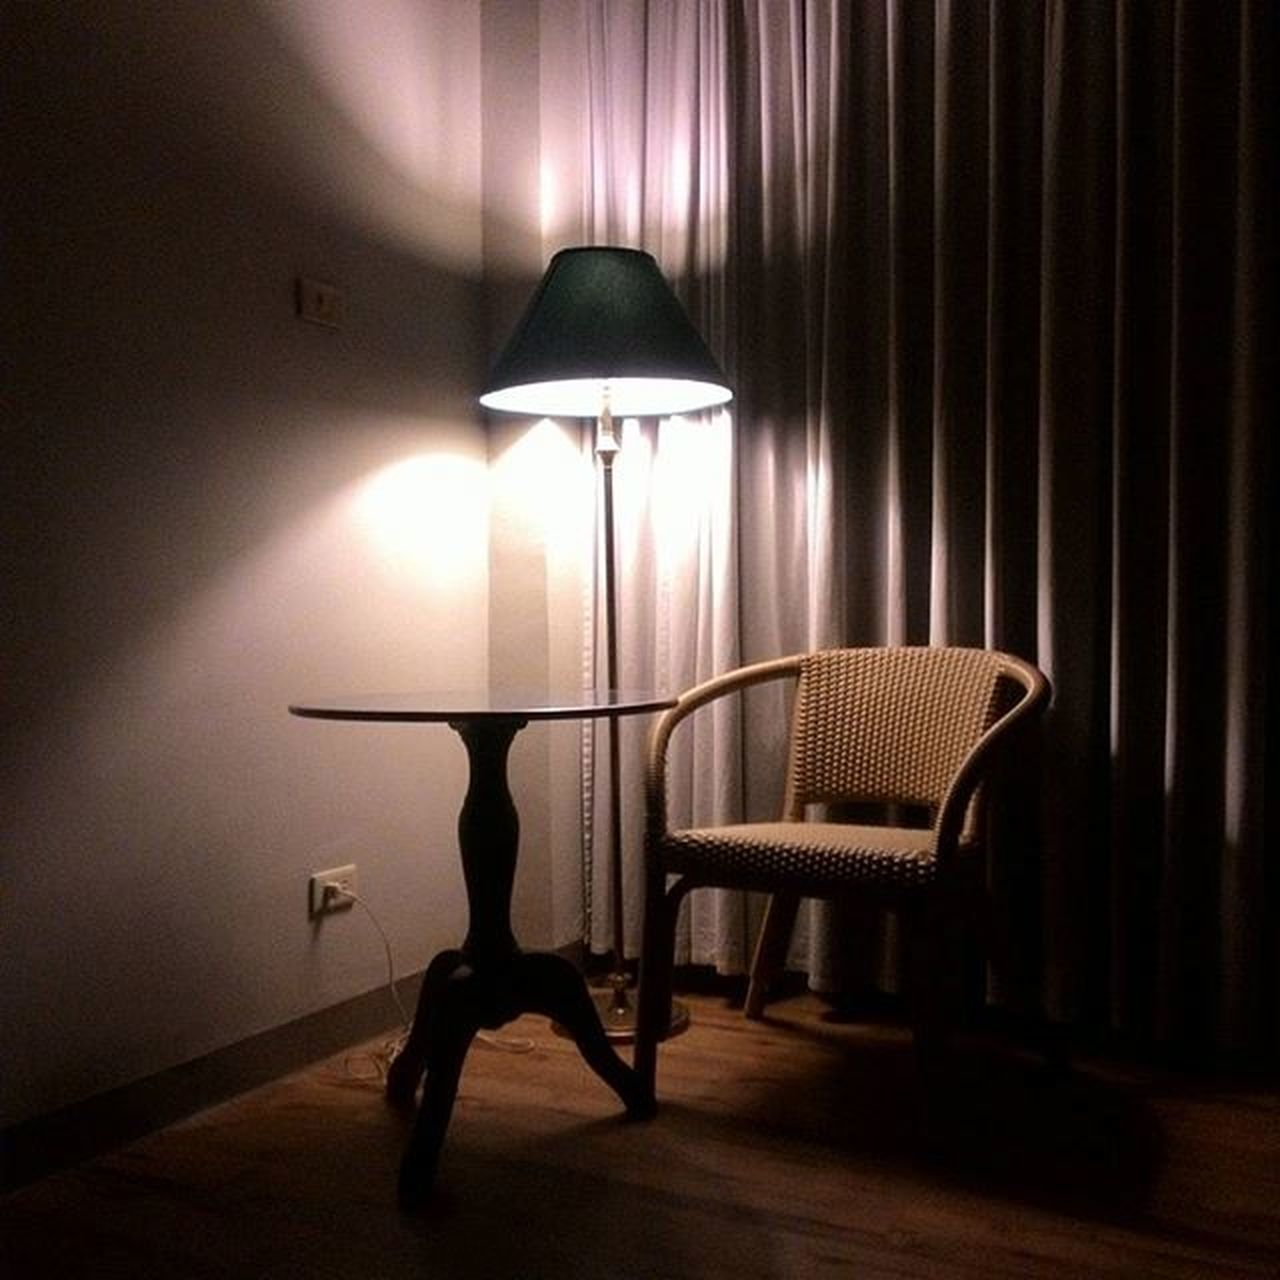 illuminated, electric lamp, lighting equipment, curtain, indoors, chair, lamp shade, no people, floor lamp, electricity, side table, day